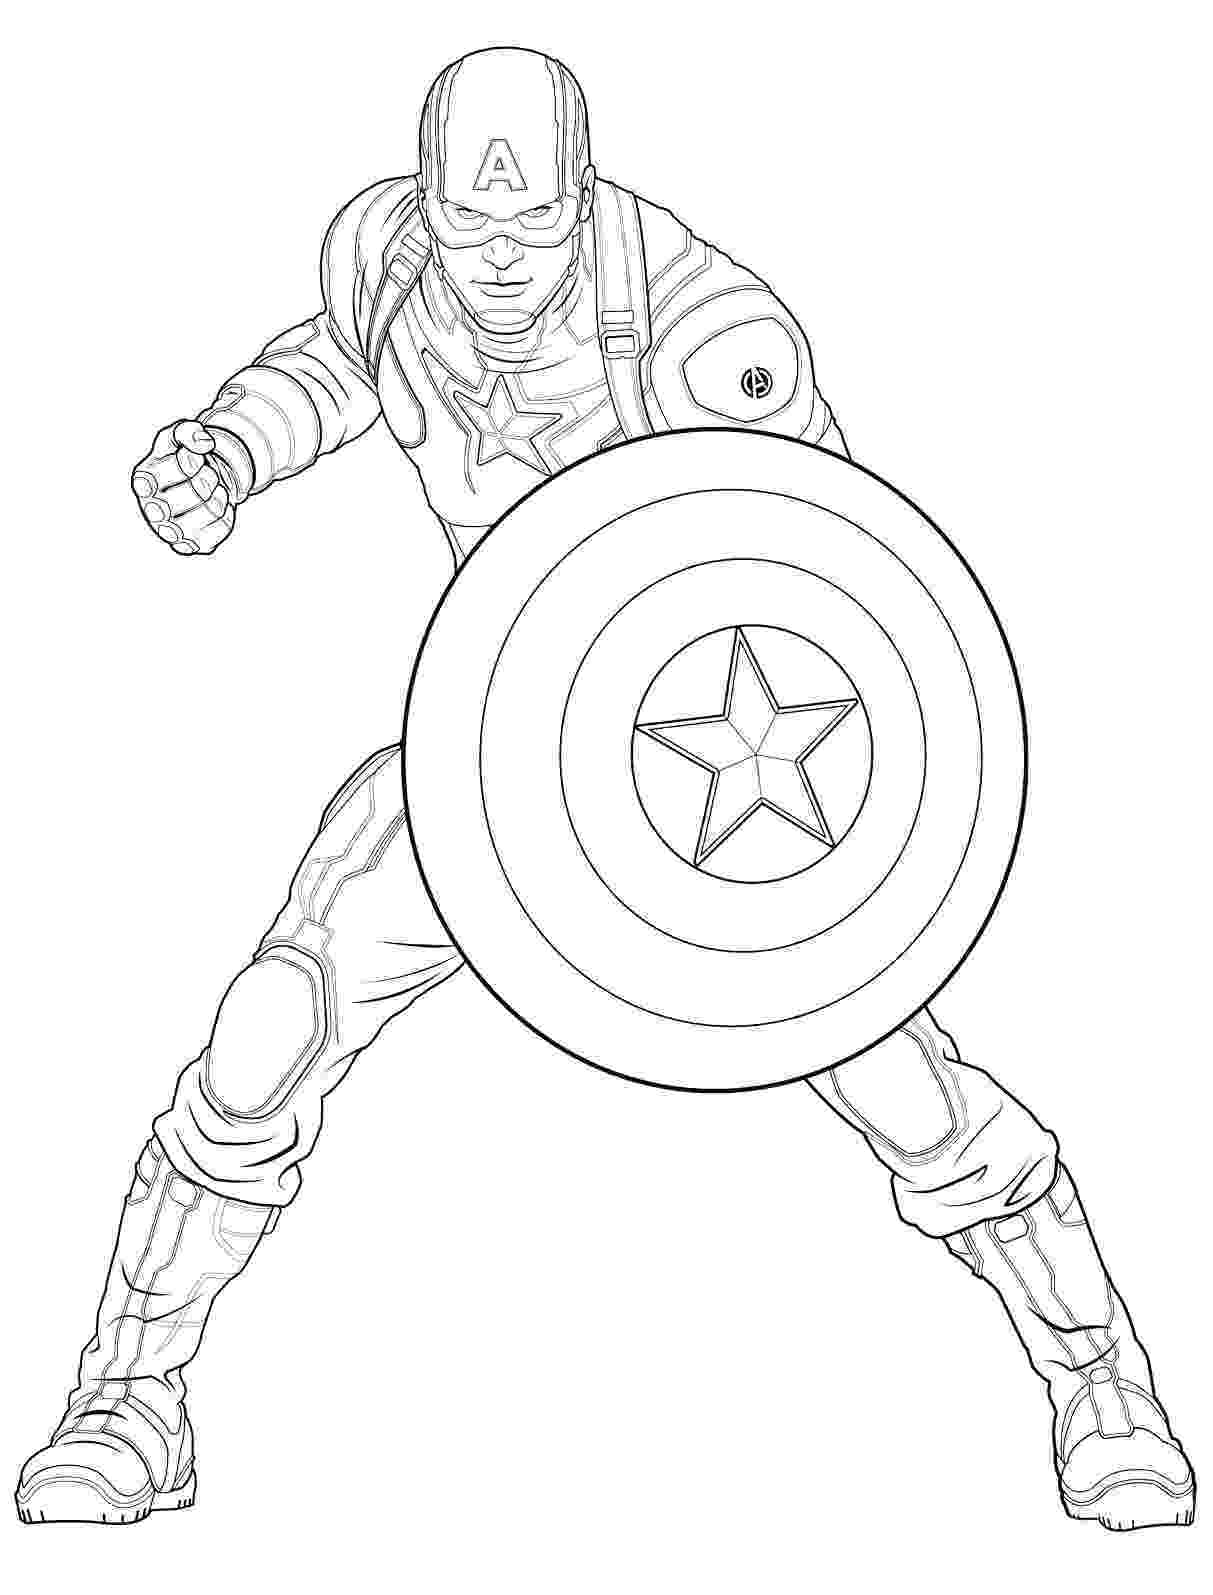 captain america coloring pictures marvel captain america coloring pages coloring home coloring pictures captain america